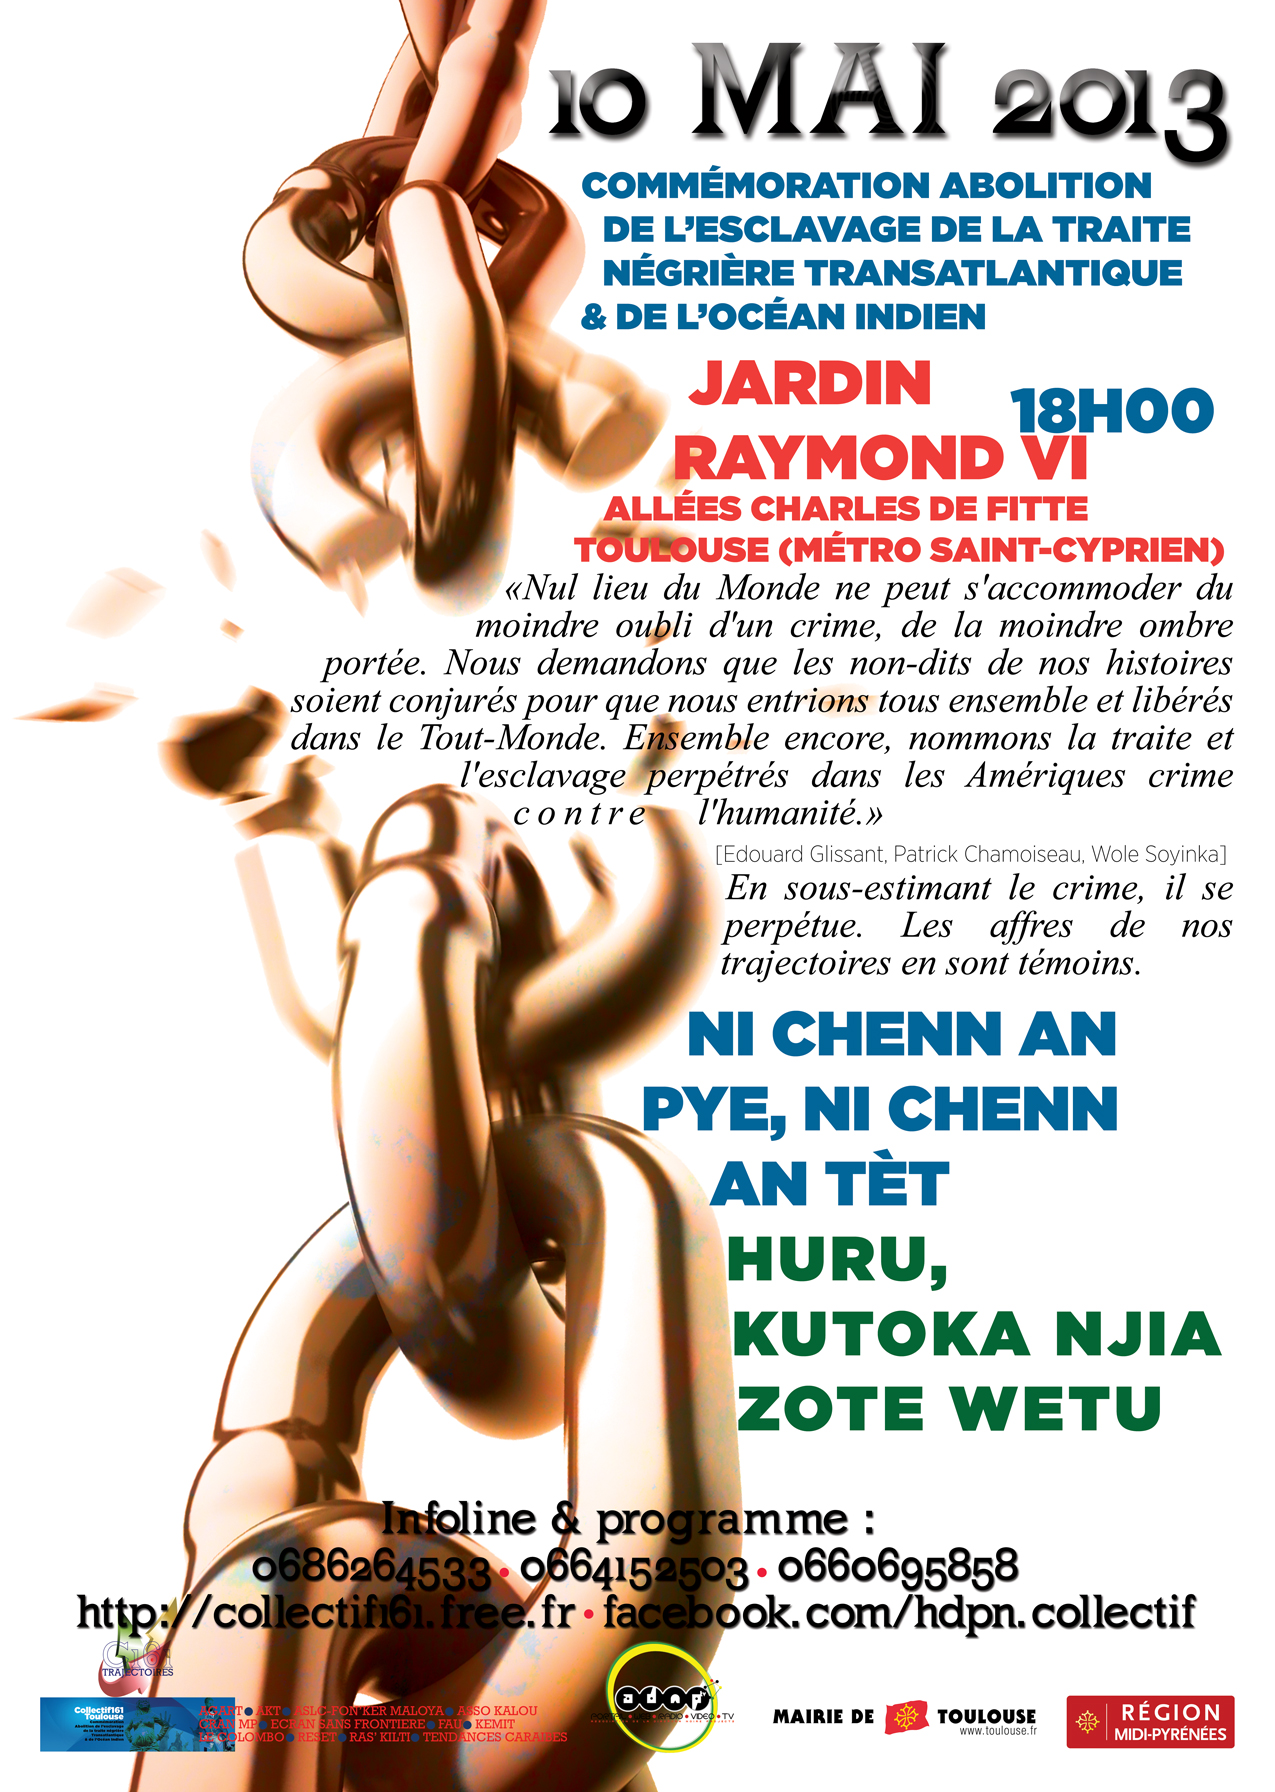 http://collectif161.free.fr/wp-content/uploads/Poster_Collectif161_2013_Commemoration%20abolition%20esclavage.jpg